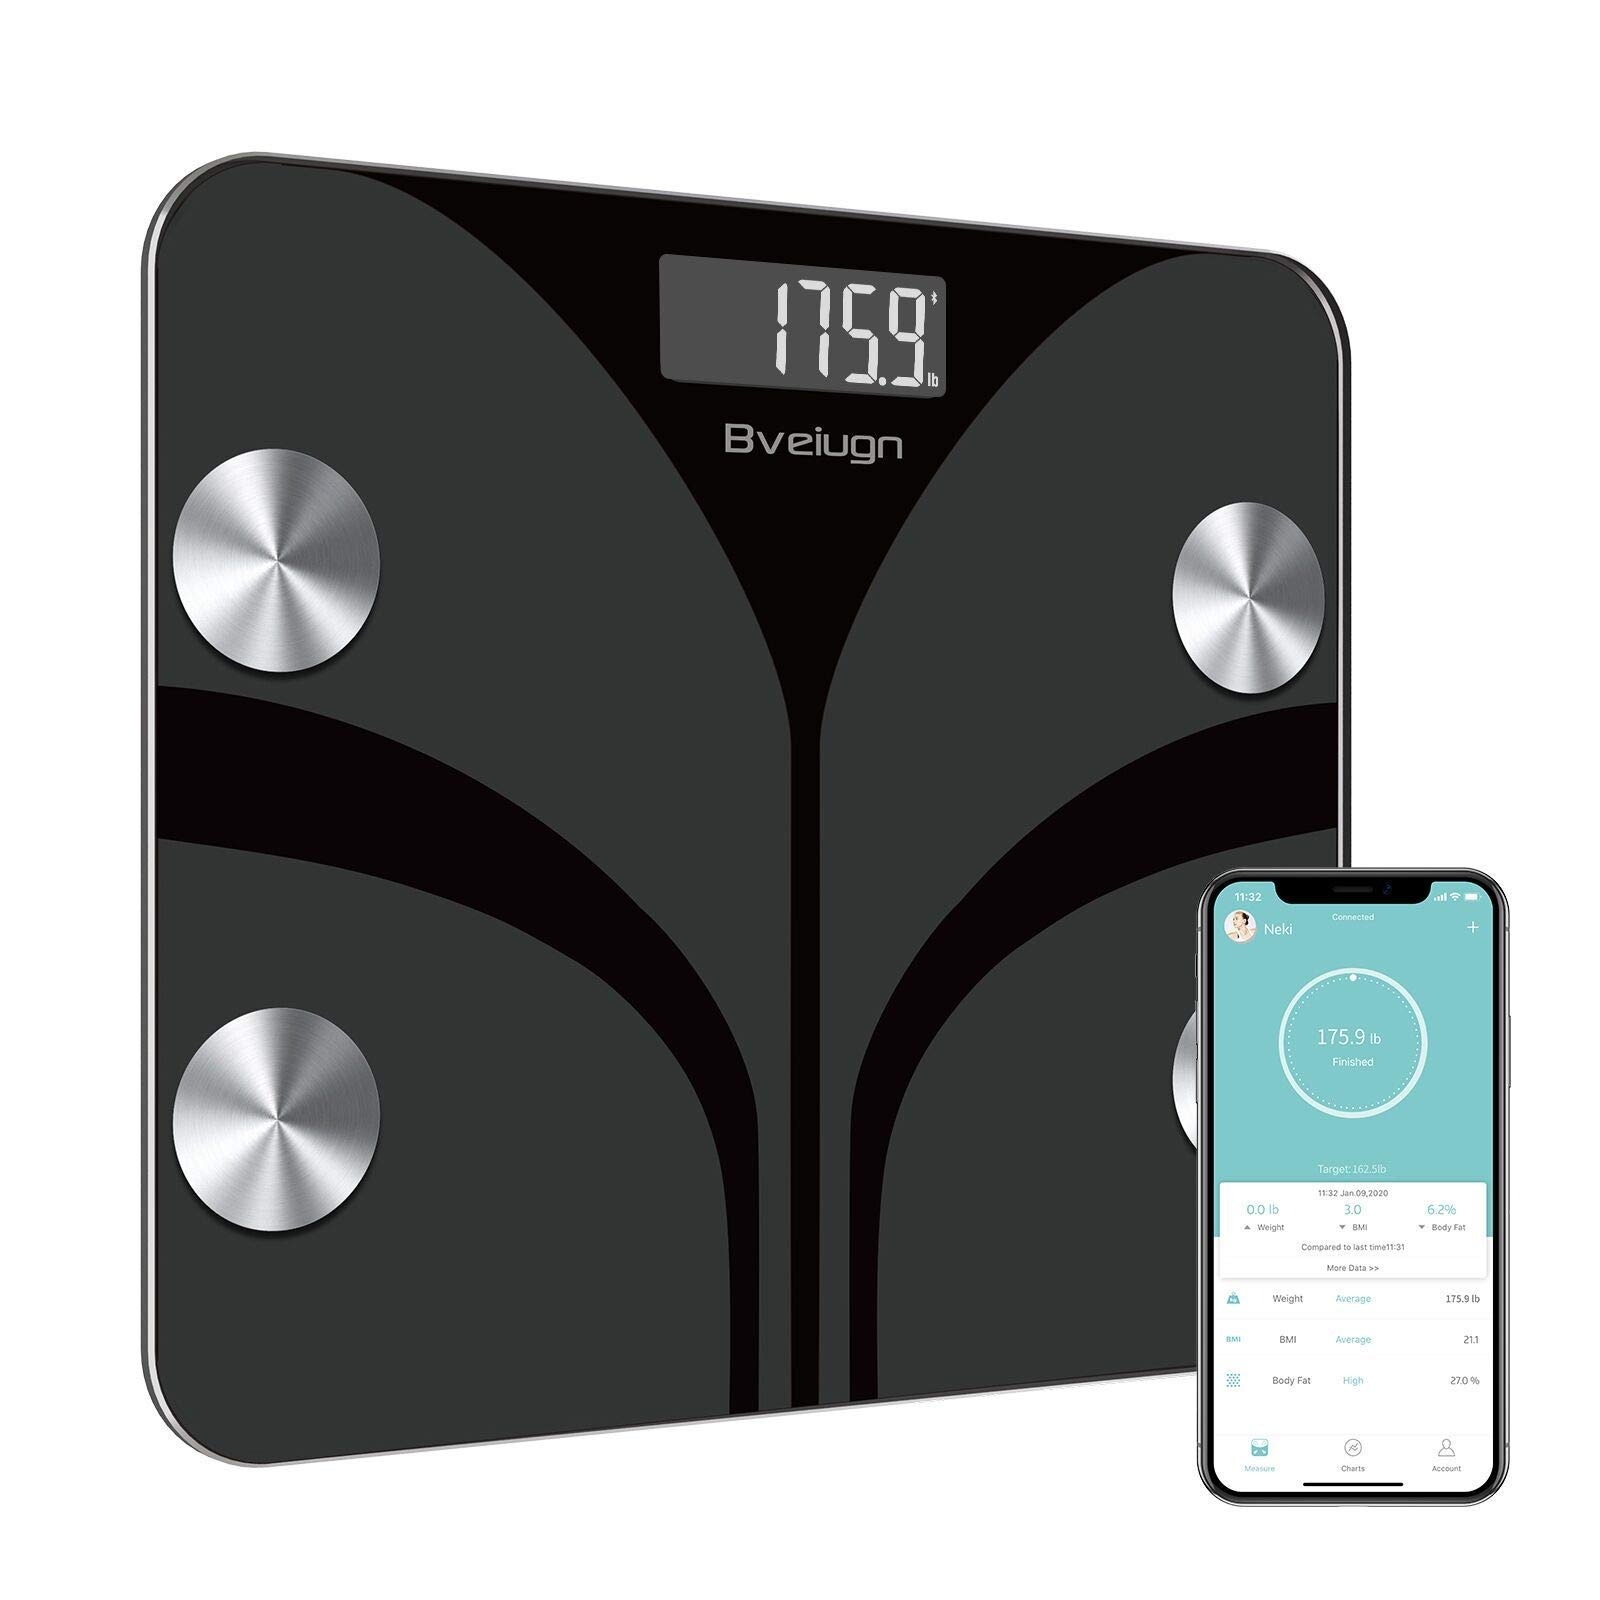 Scale Body Weight, Digital Body Fat Smart Wireless Bathroom BMI Composition Analyzer Health Monitor Tempered Glass Platform Large Digital Backlit LCD with Smartphone App